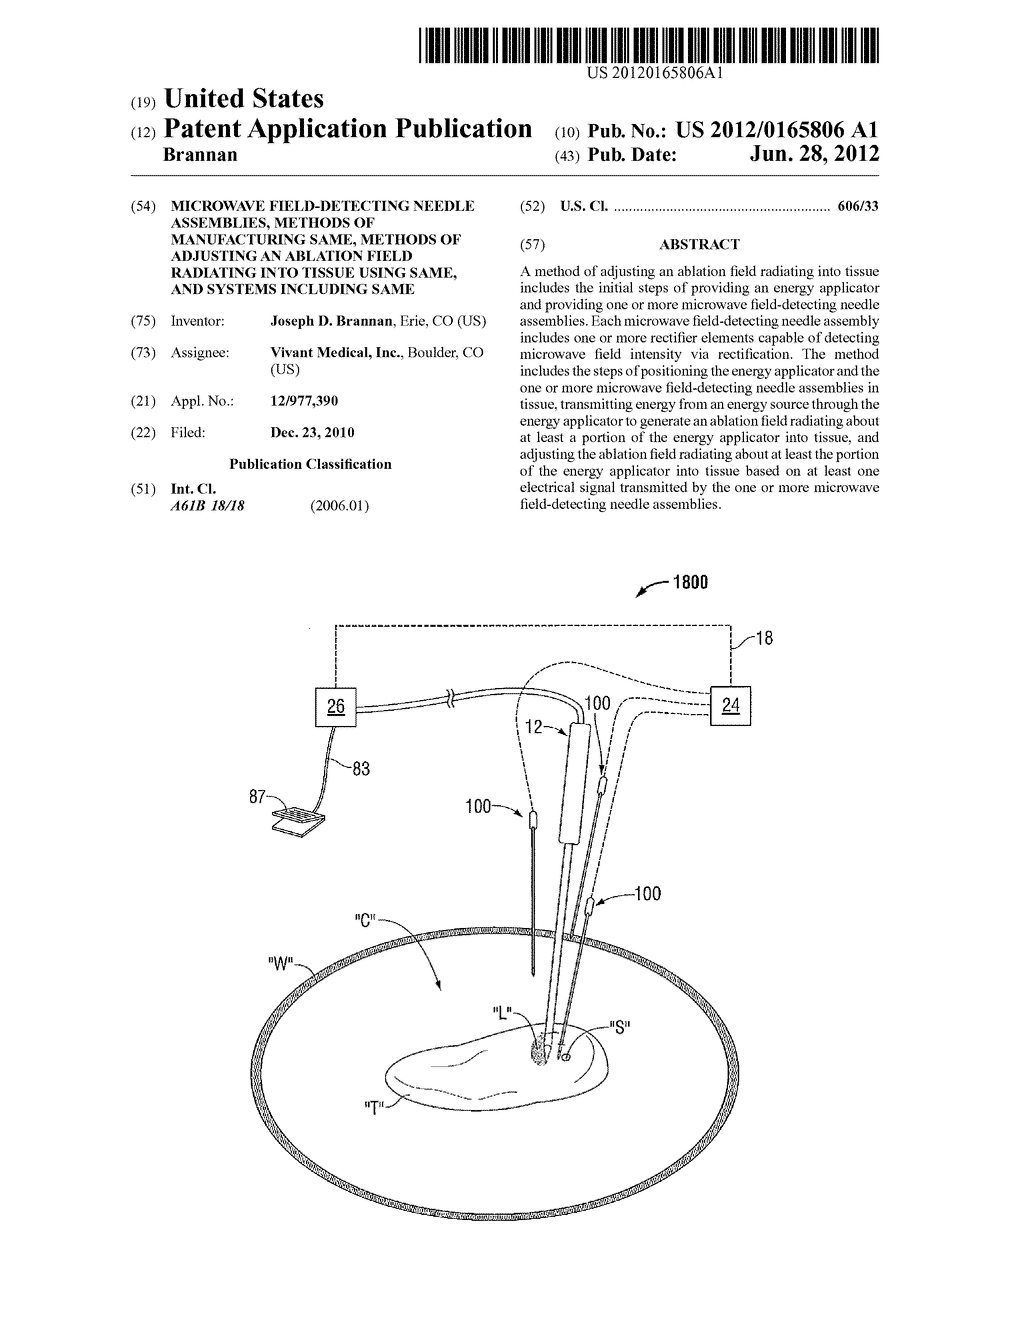 Microwave Field-Detecting Needle Assemblies, Methods of Manufacturing     Same, Methods of Adjusting an Ablation Field Radiating into Tissue using     Same, and Systems Including Same - diagram, schematic, and image 01